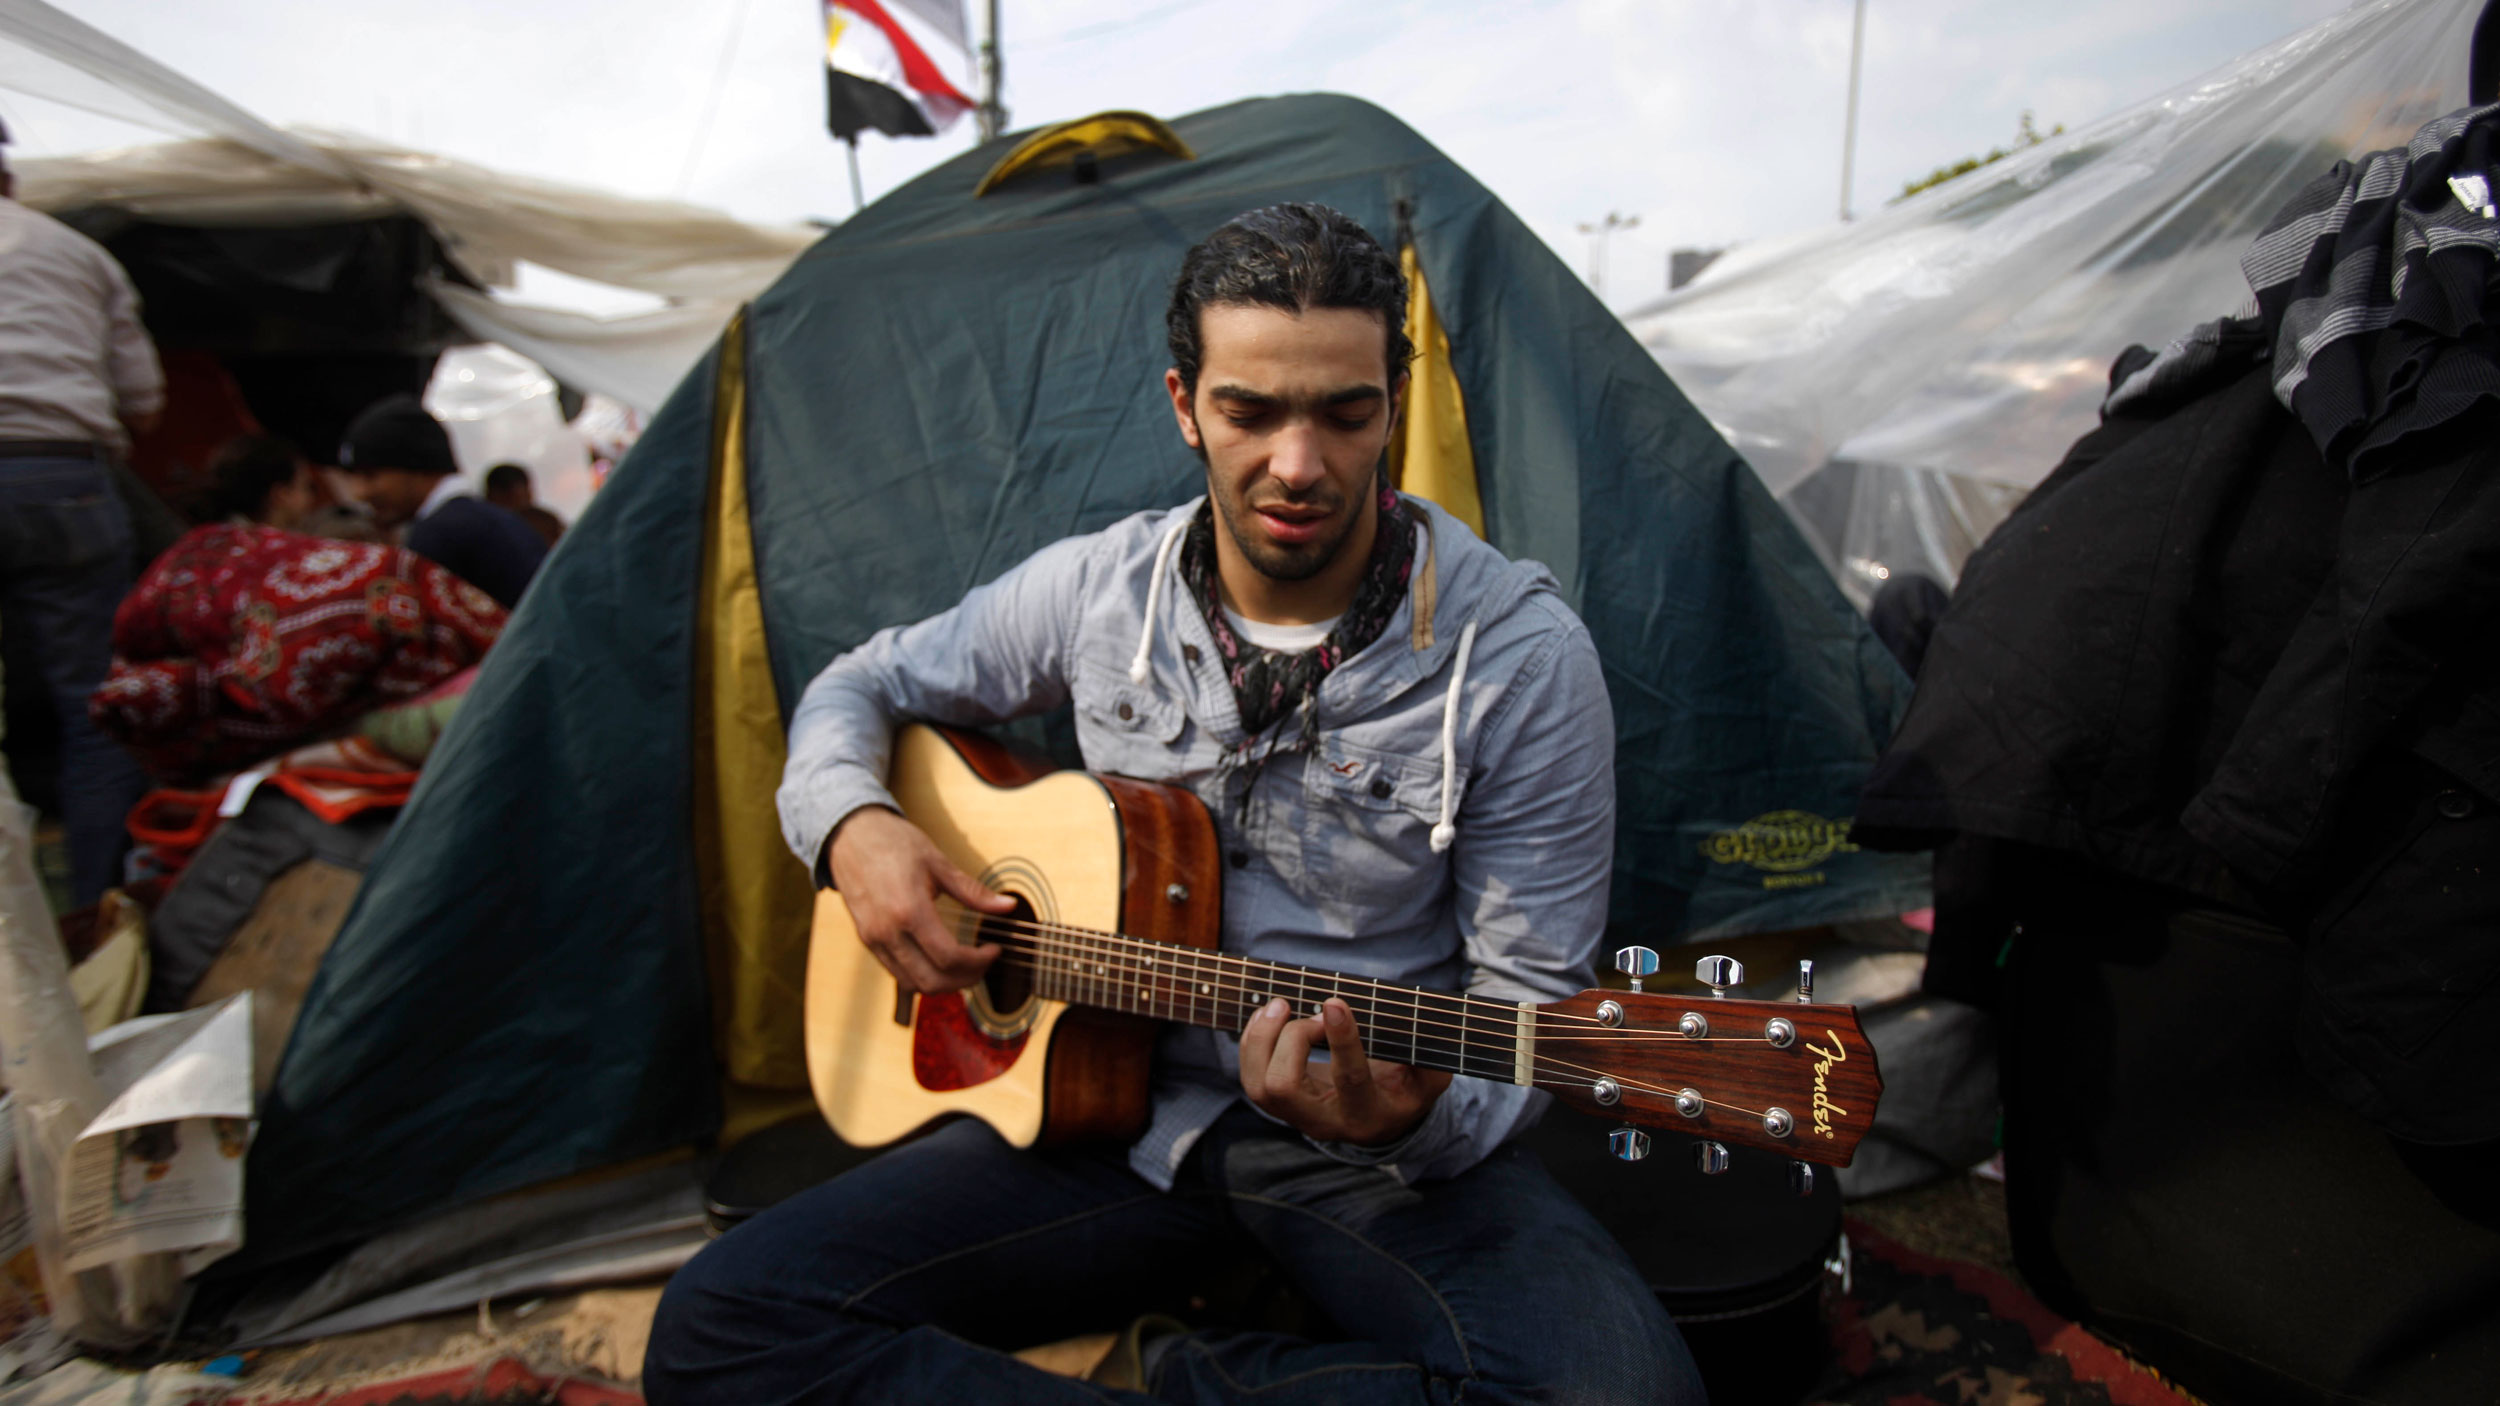 A man is sitting cross-legged in front of a tent and holding a guitar.